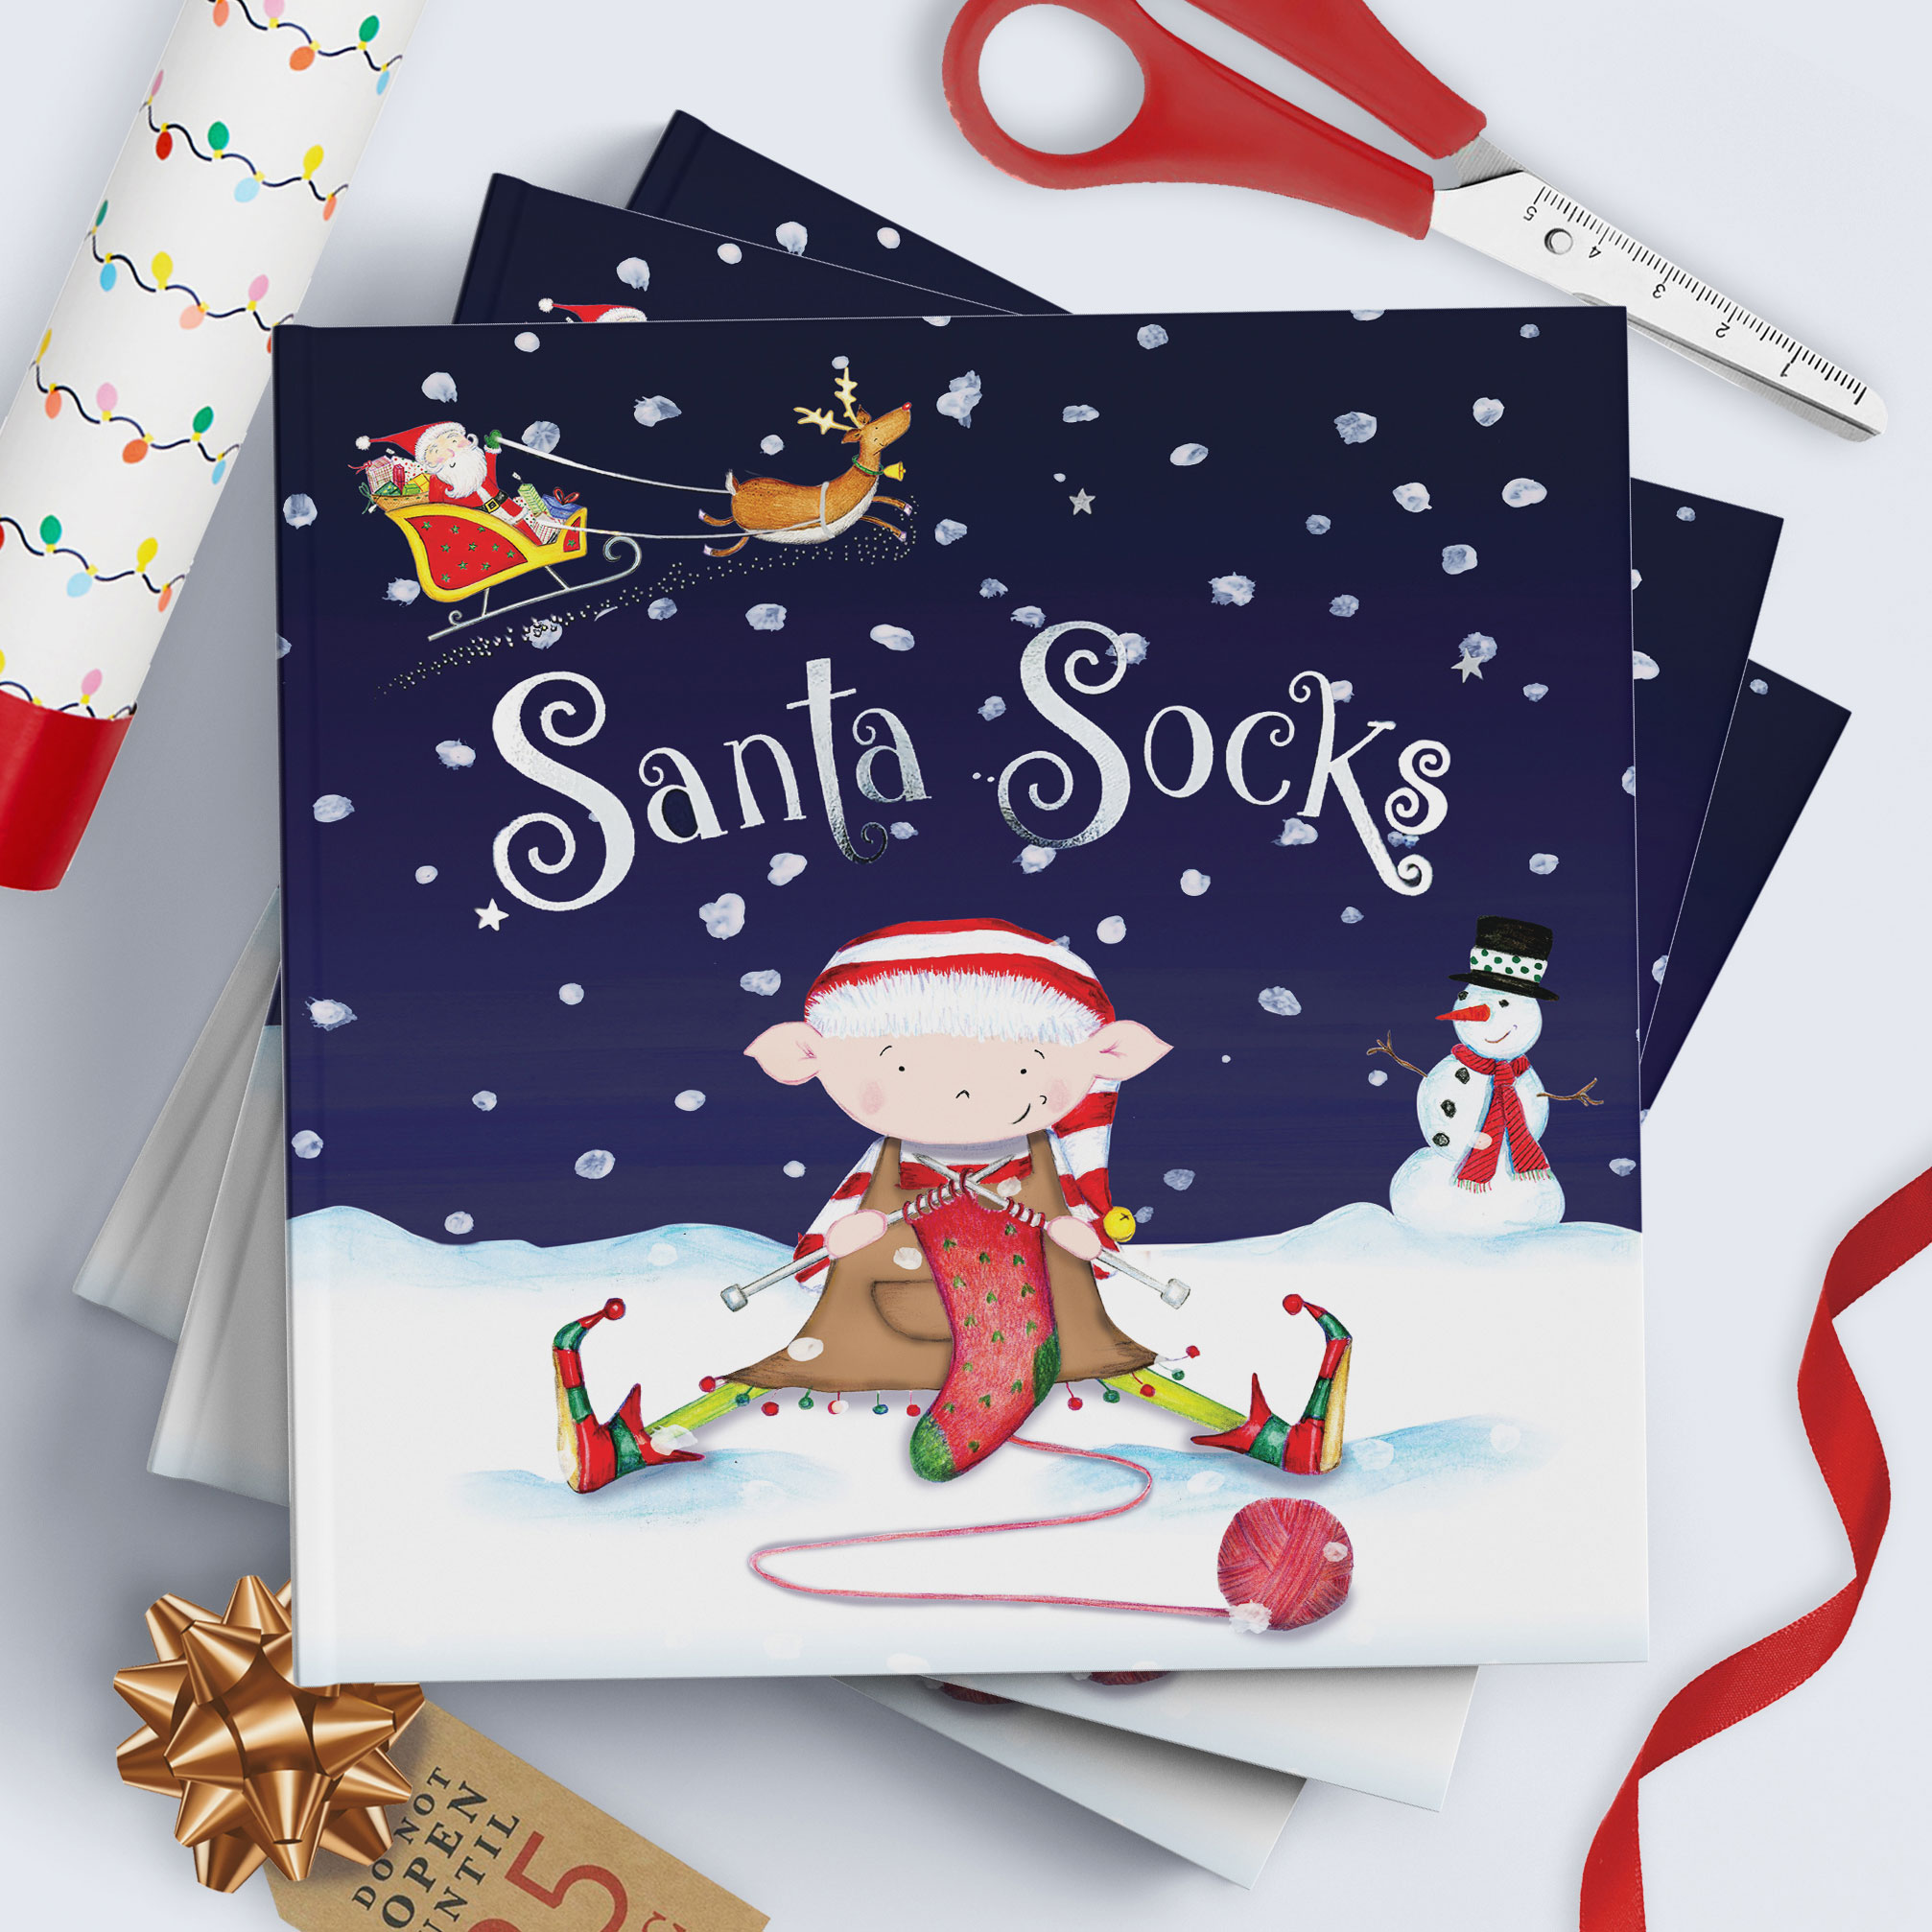 Santa Socks personalised Christmas adventure books stacked ready for wrapping